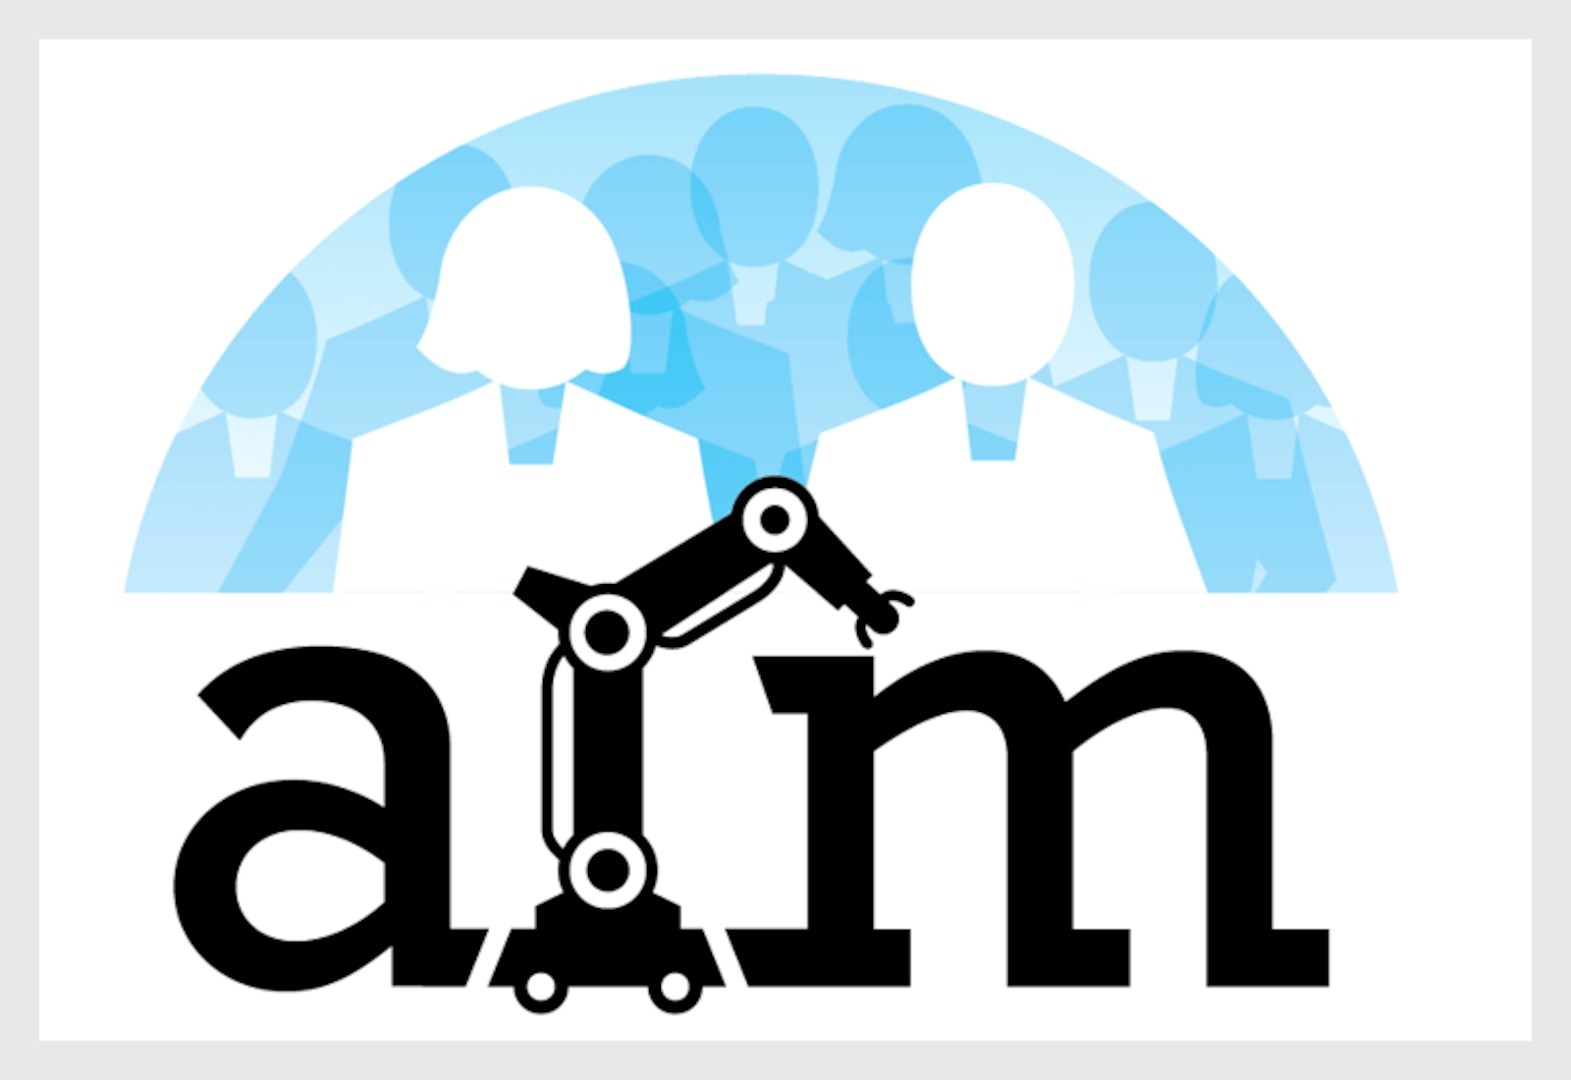 Advanced Robotics Manufacturing (ARM) logo